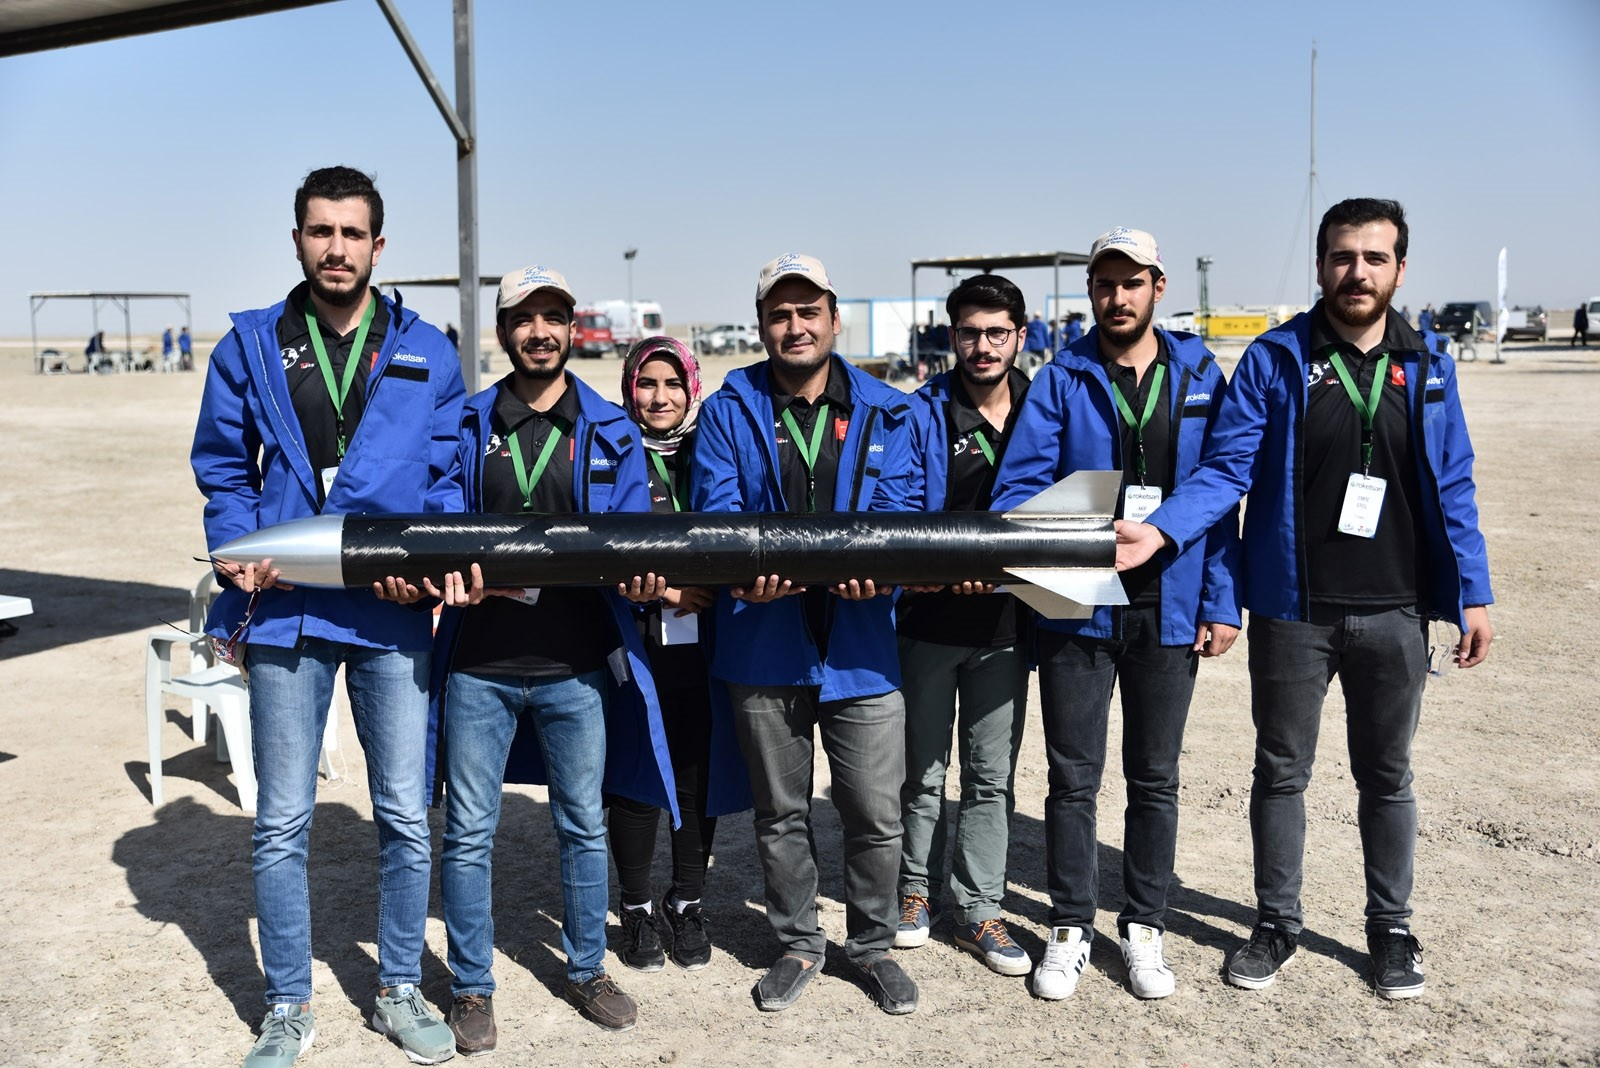 Students compete at rocket race in central Turkey's Aksaray as part of upcoming Teknofest